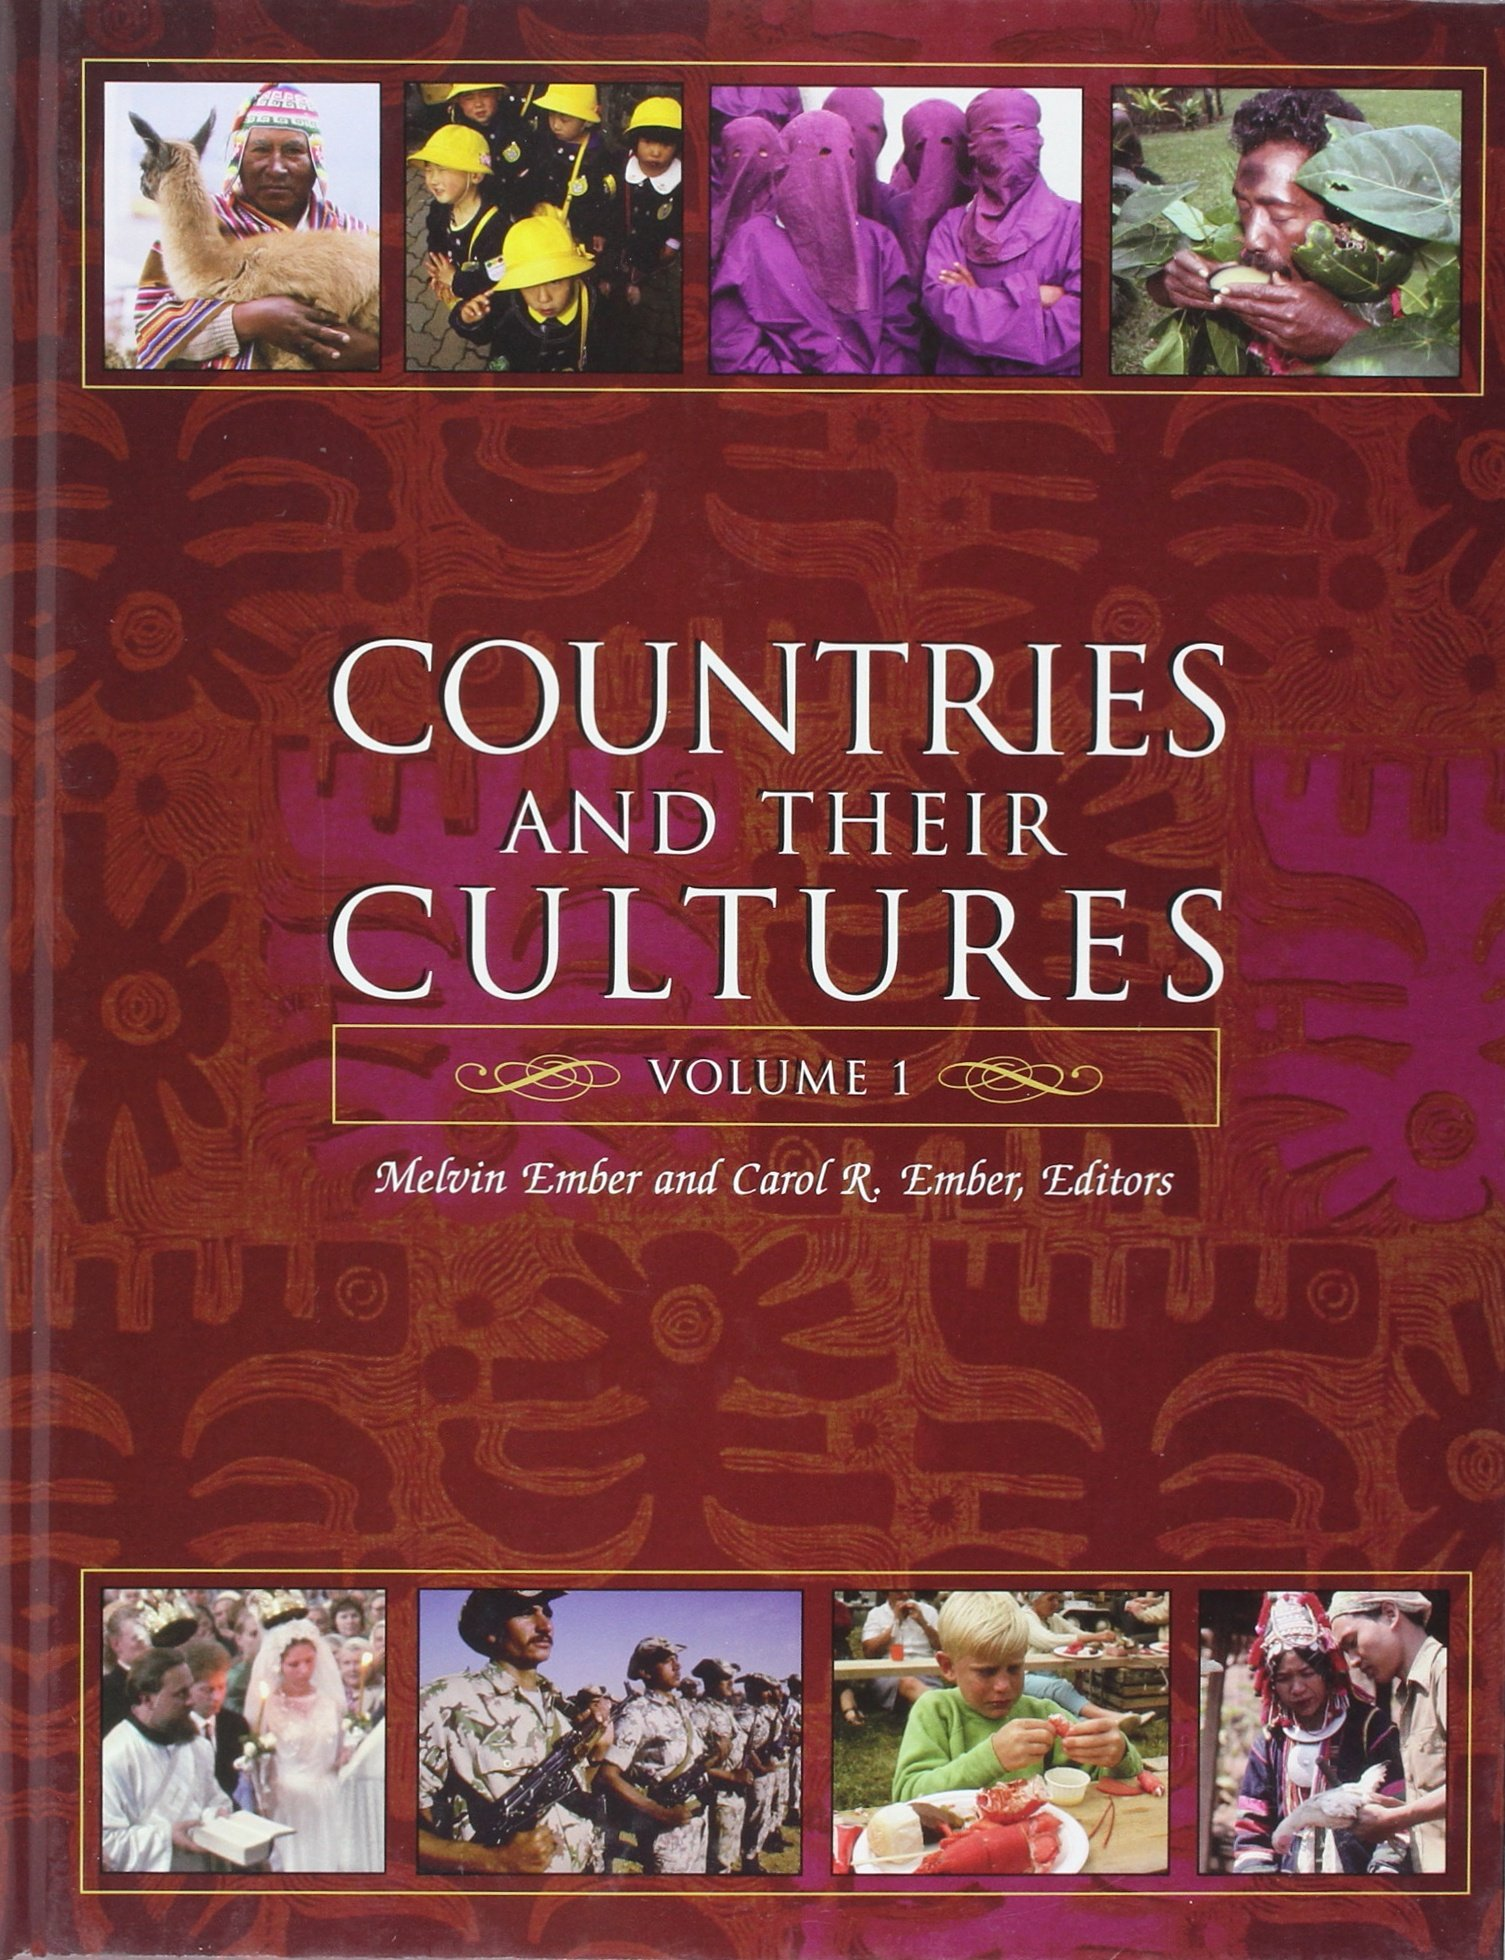 Countries and Their Cultures Vol. 1 ONLY, hc 2001 pdf